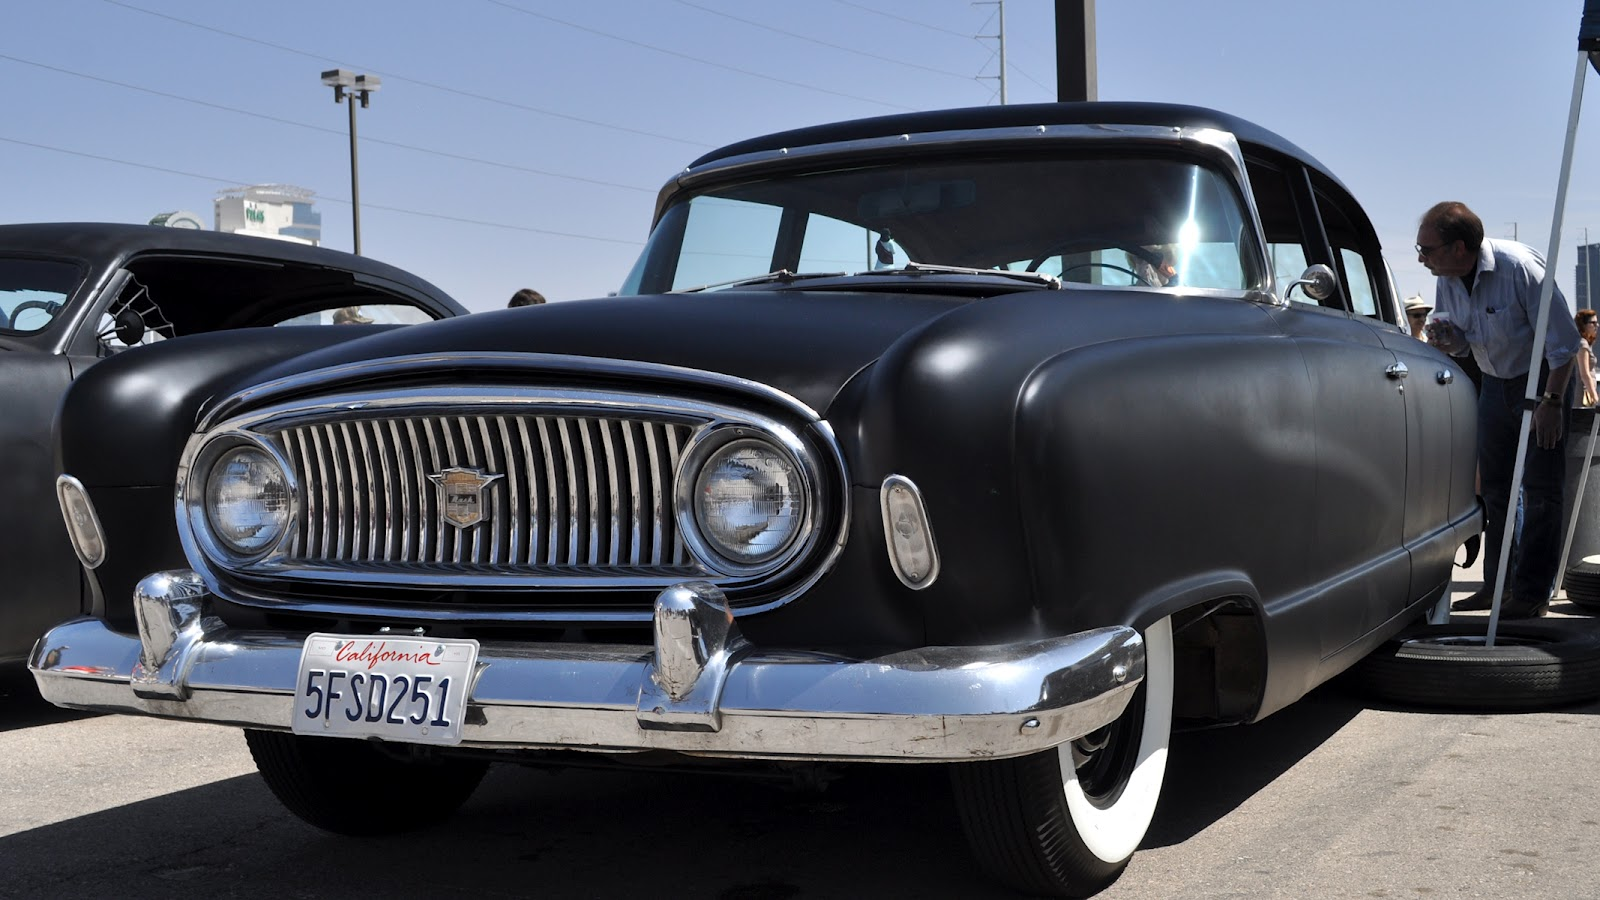 Just A Car Guy: Viva Las Vegas Was A Cool Car Show, My